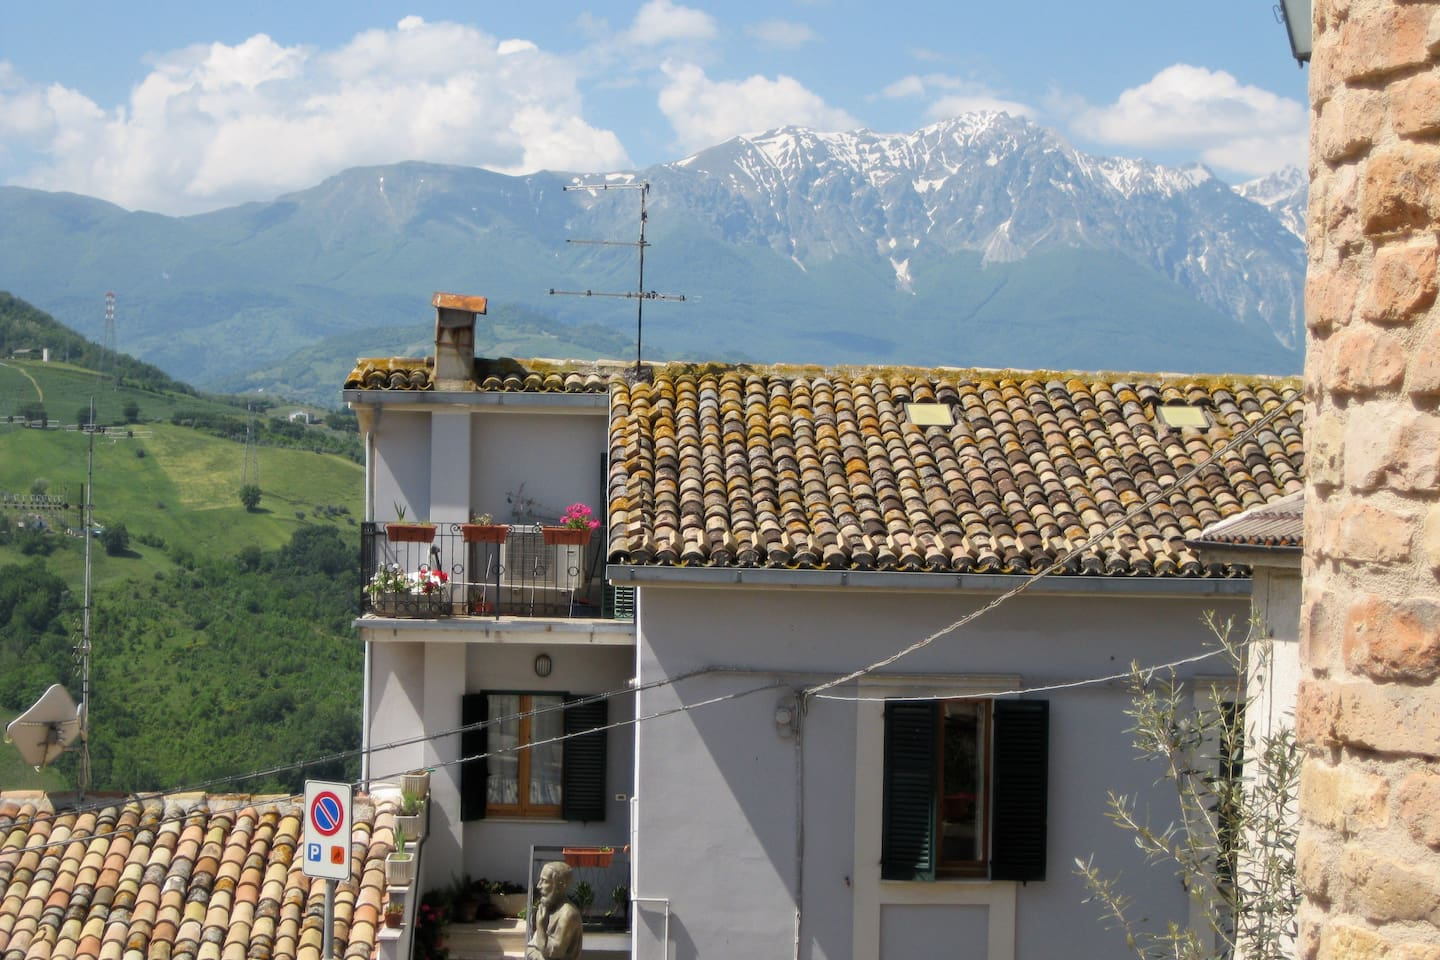 View of the Gran Sasso from the house